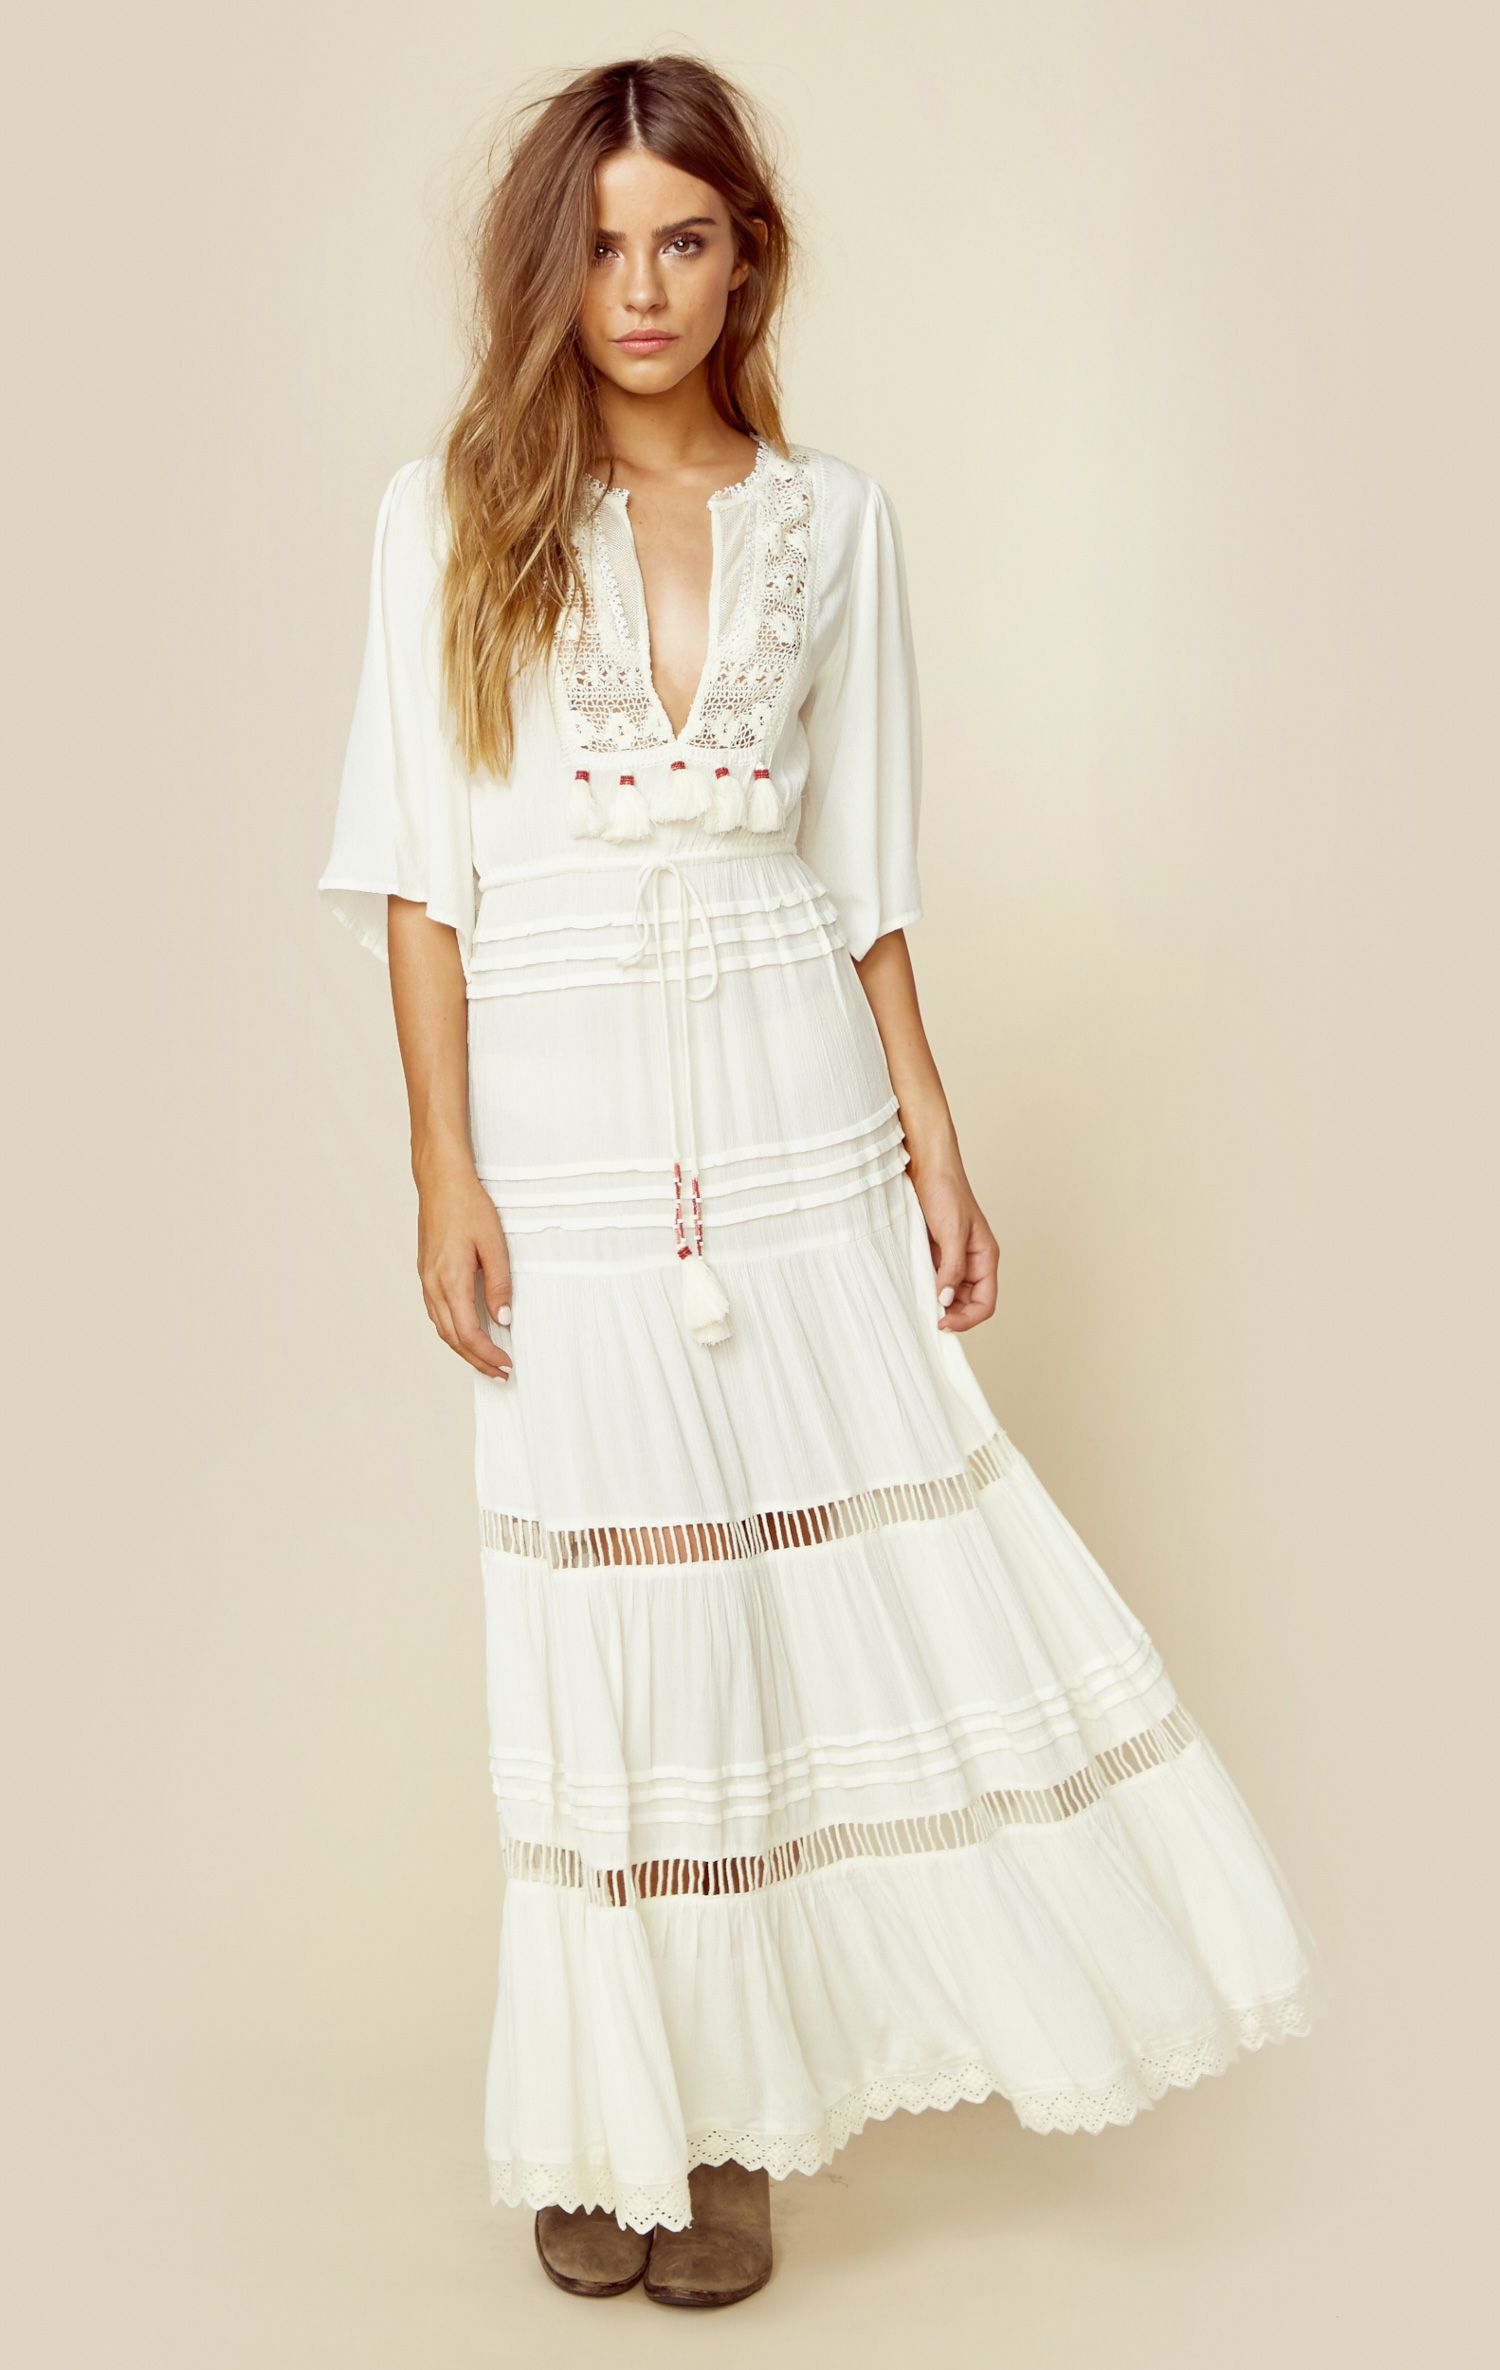 regent maxi dress | robe longue fluide, maxi robes, mode